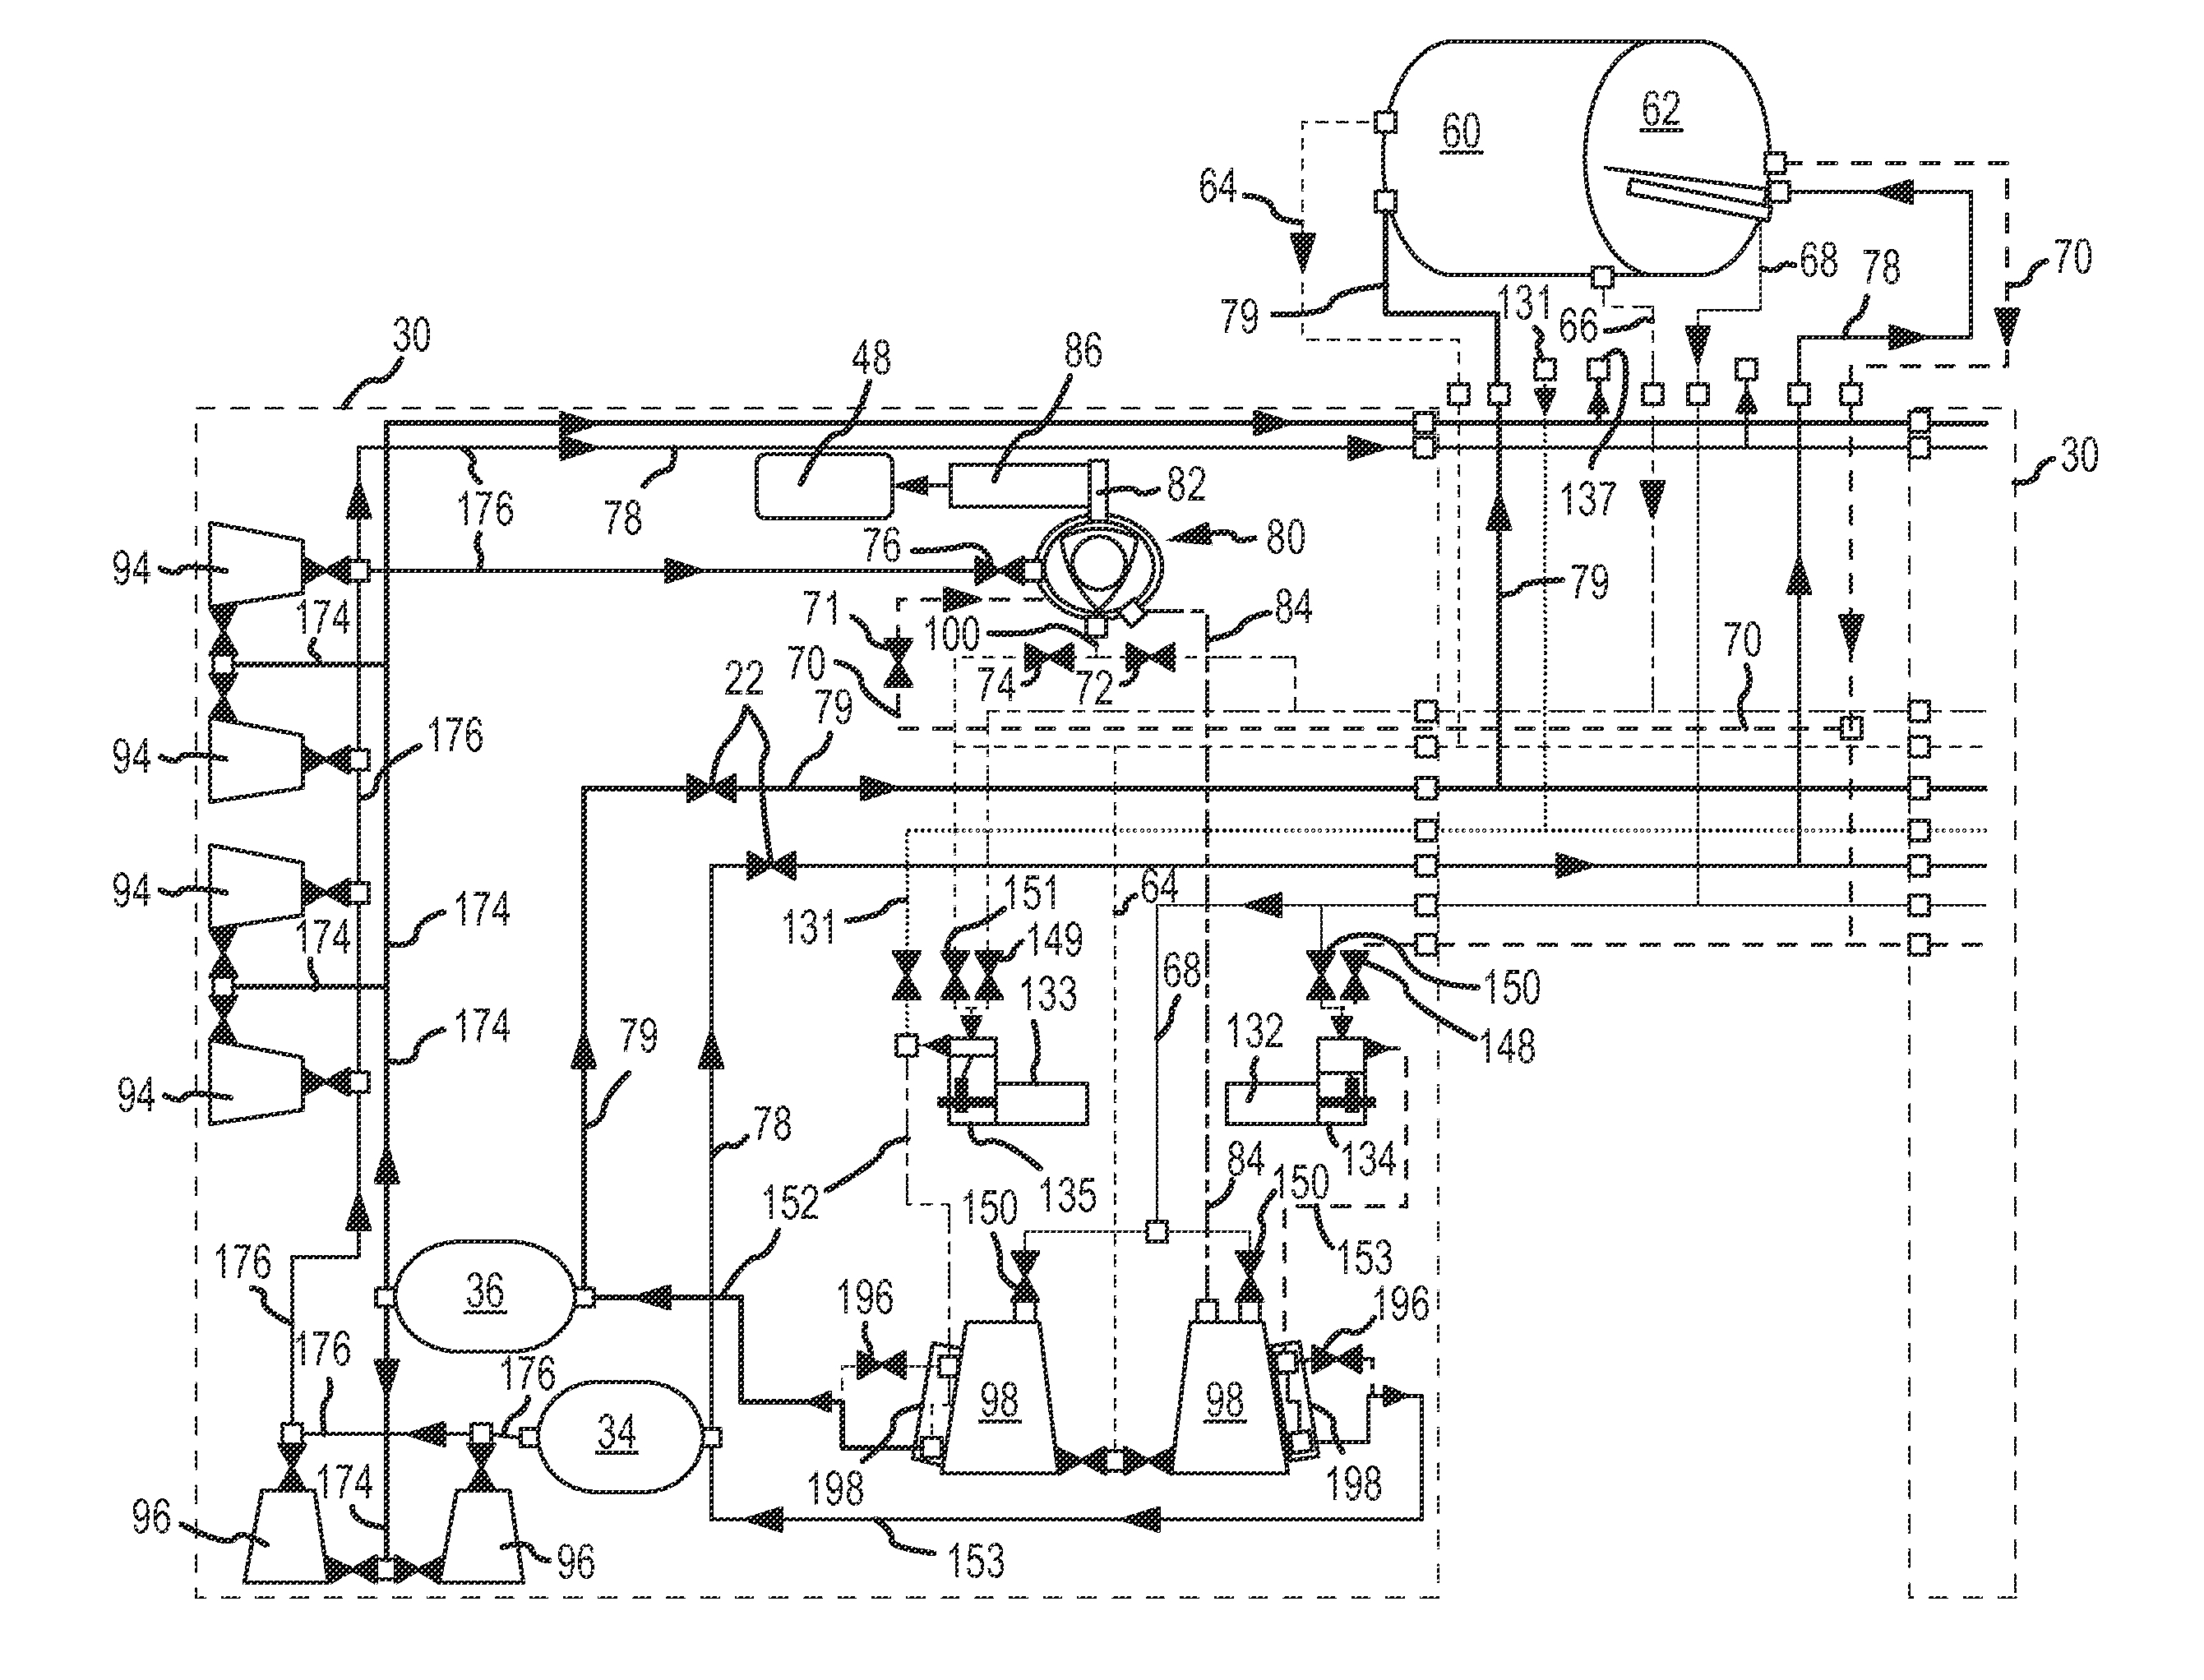 Rcs Actuator Wiring Diagram Sample Lightning Amp Download Patent Us Integrated Vehicle Fluids Google Patents Drawing